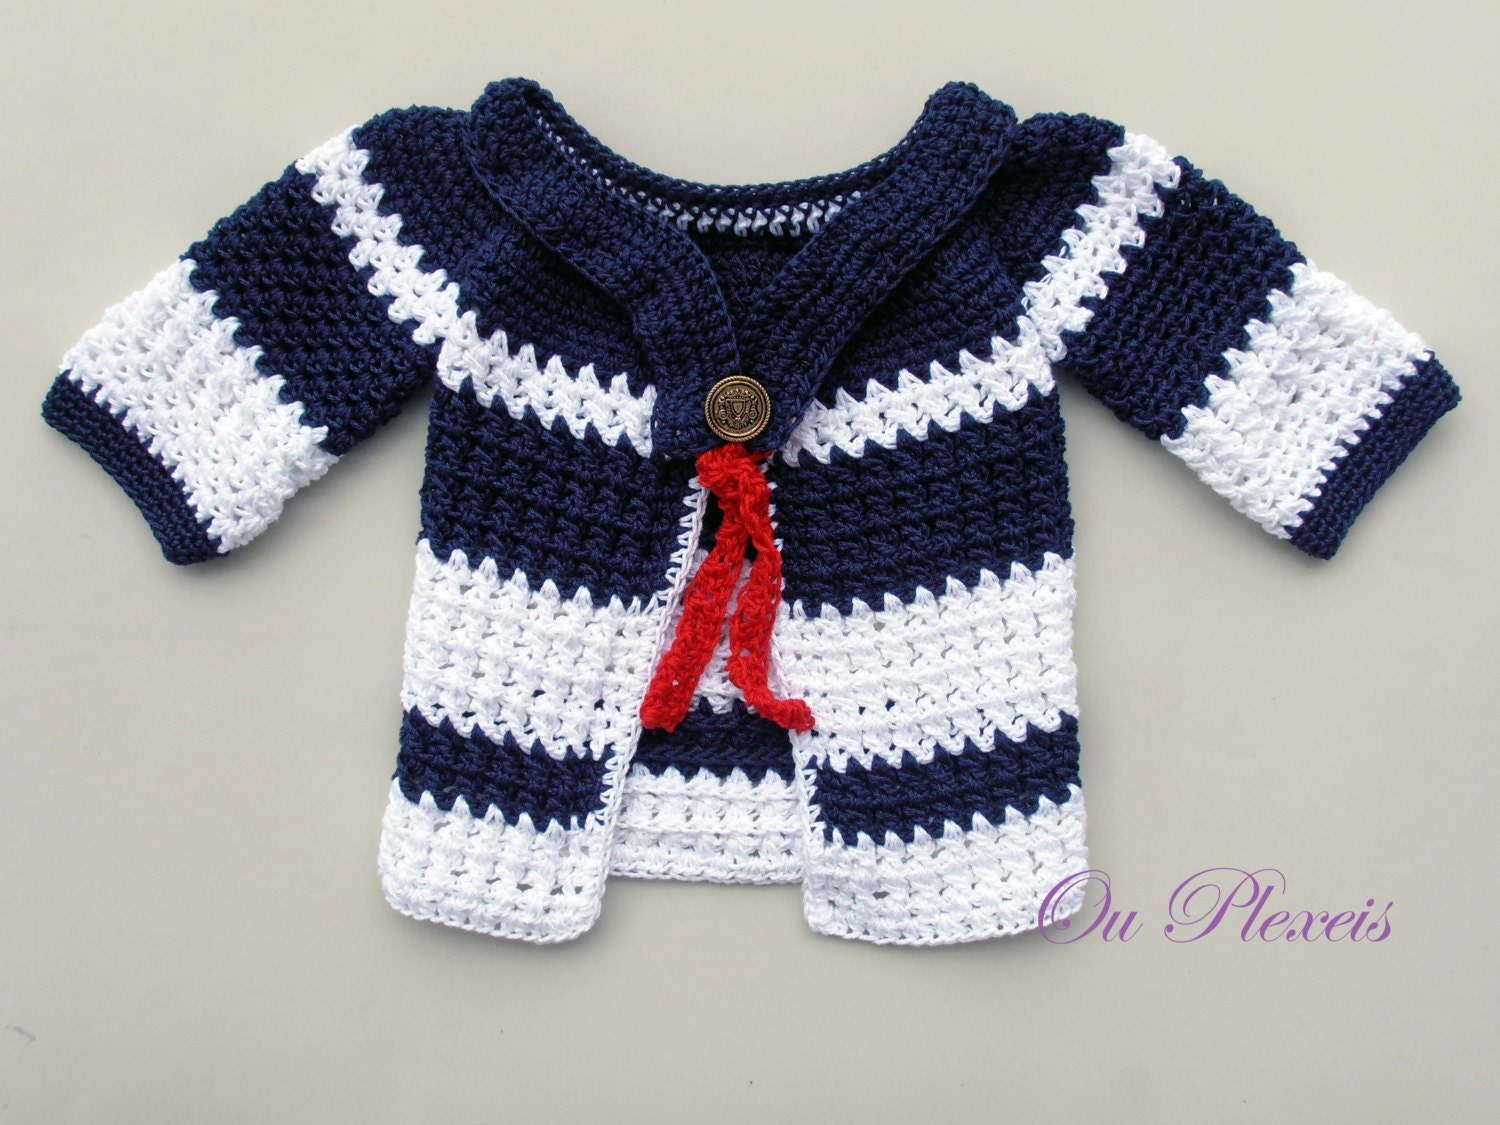 Baby cardigan crochet girl cardigan crochet boy sweater